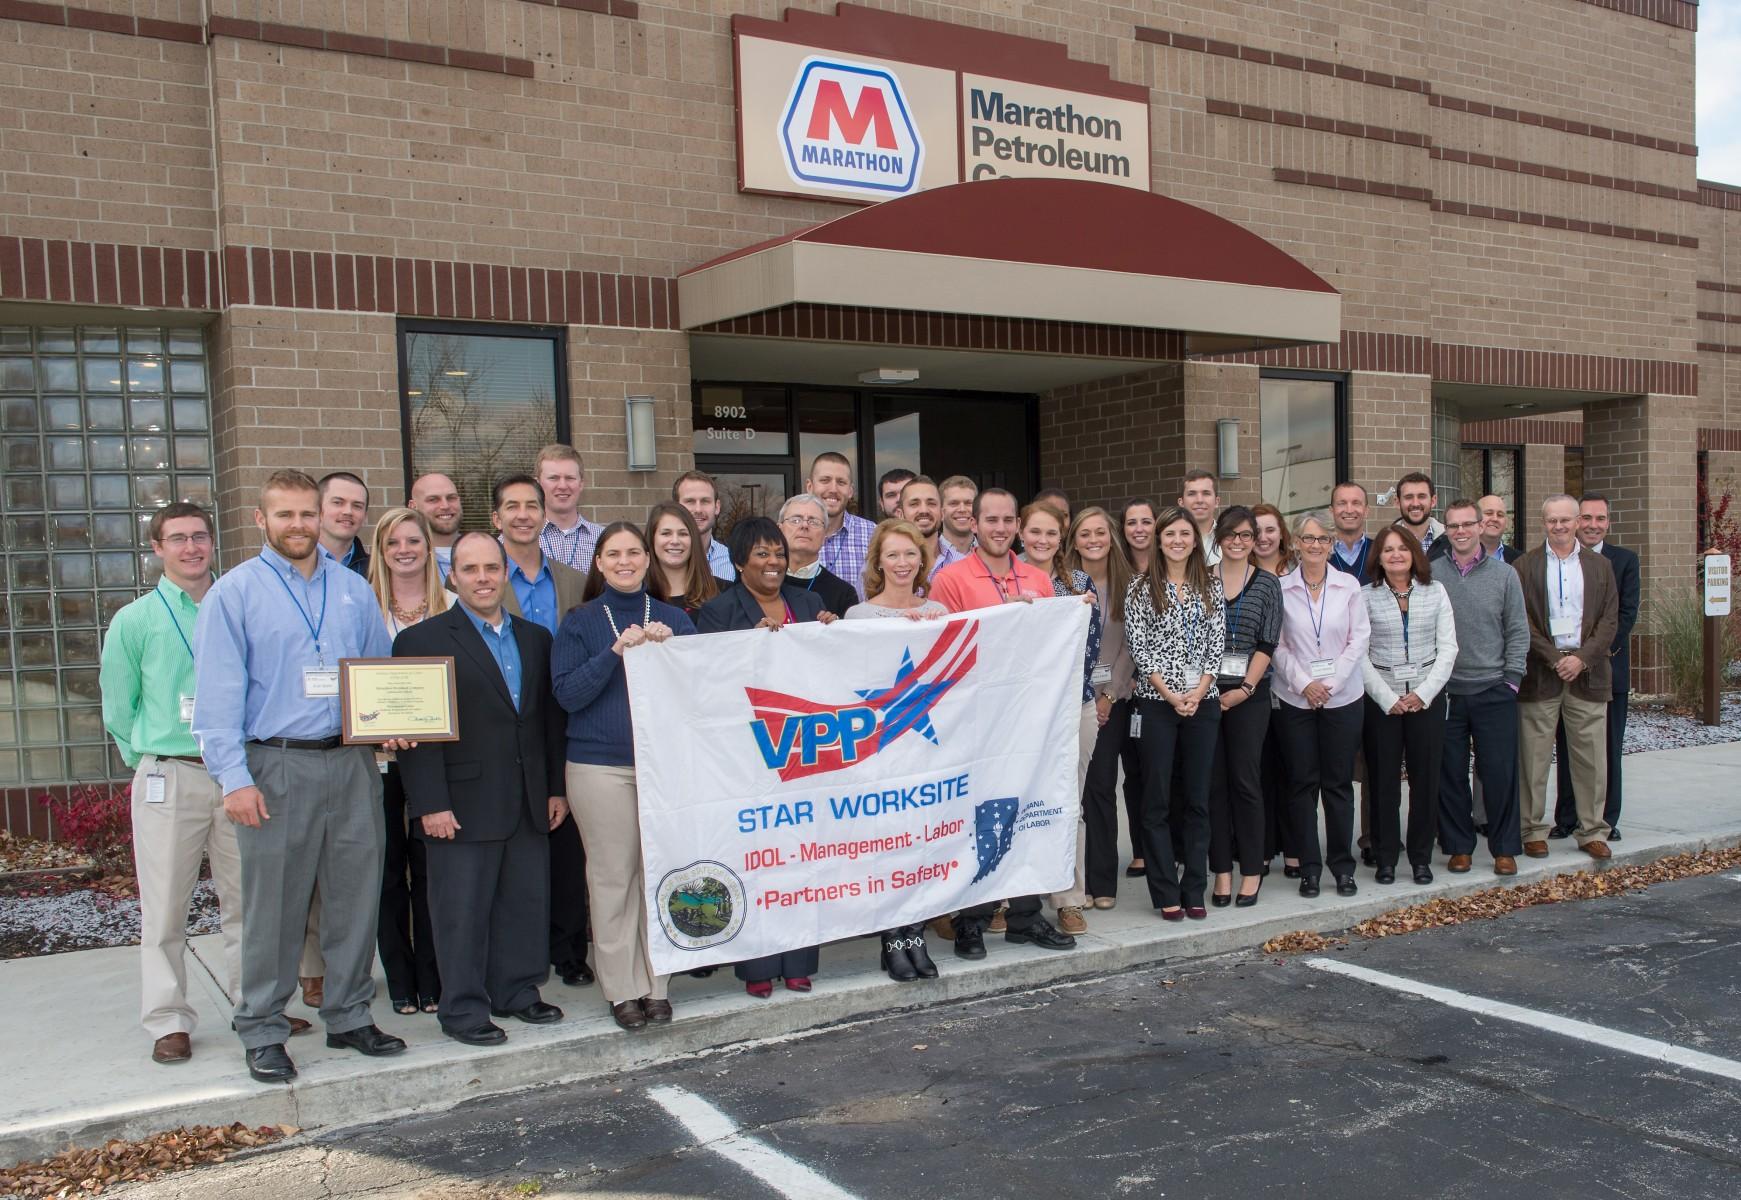 MPC employees at the Indianapolis office gather to celebrate the VPP Star Worksite award